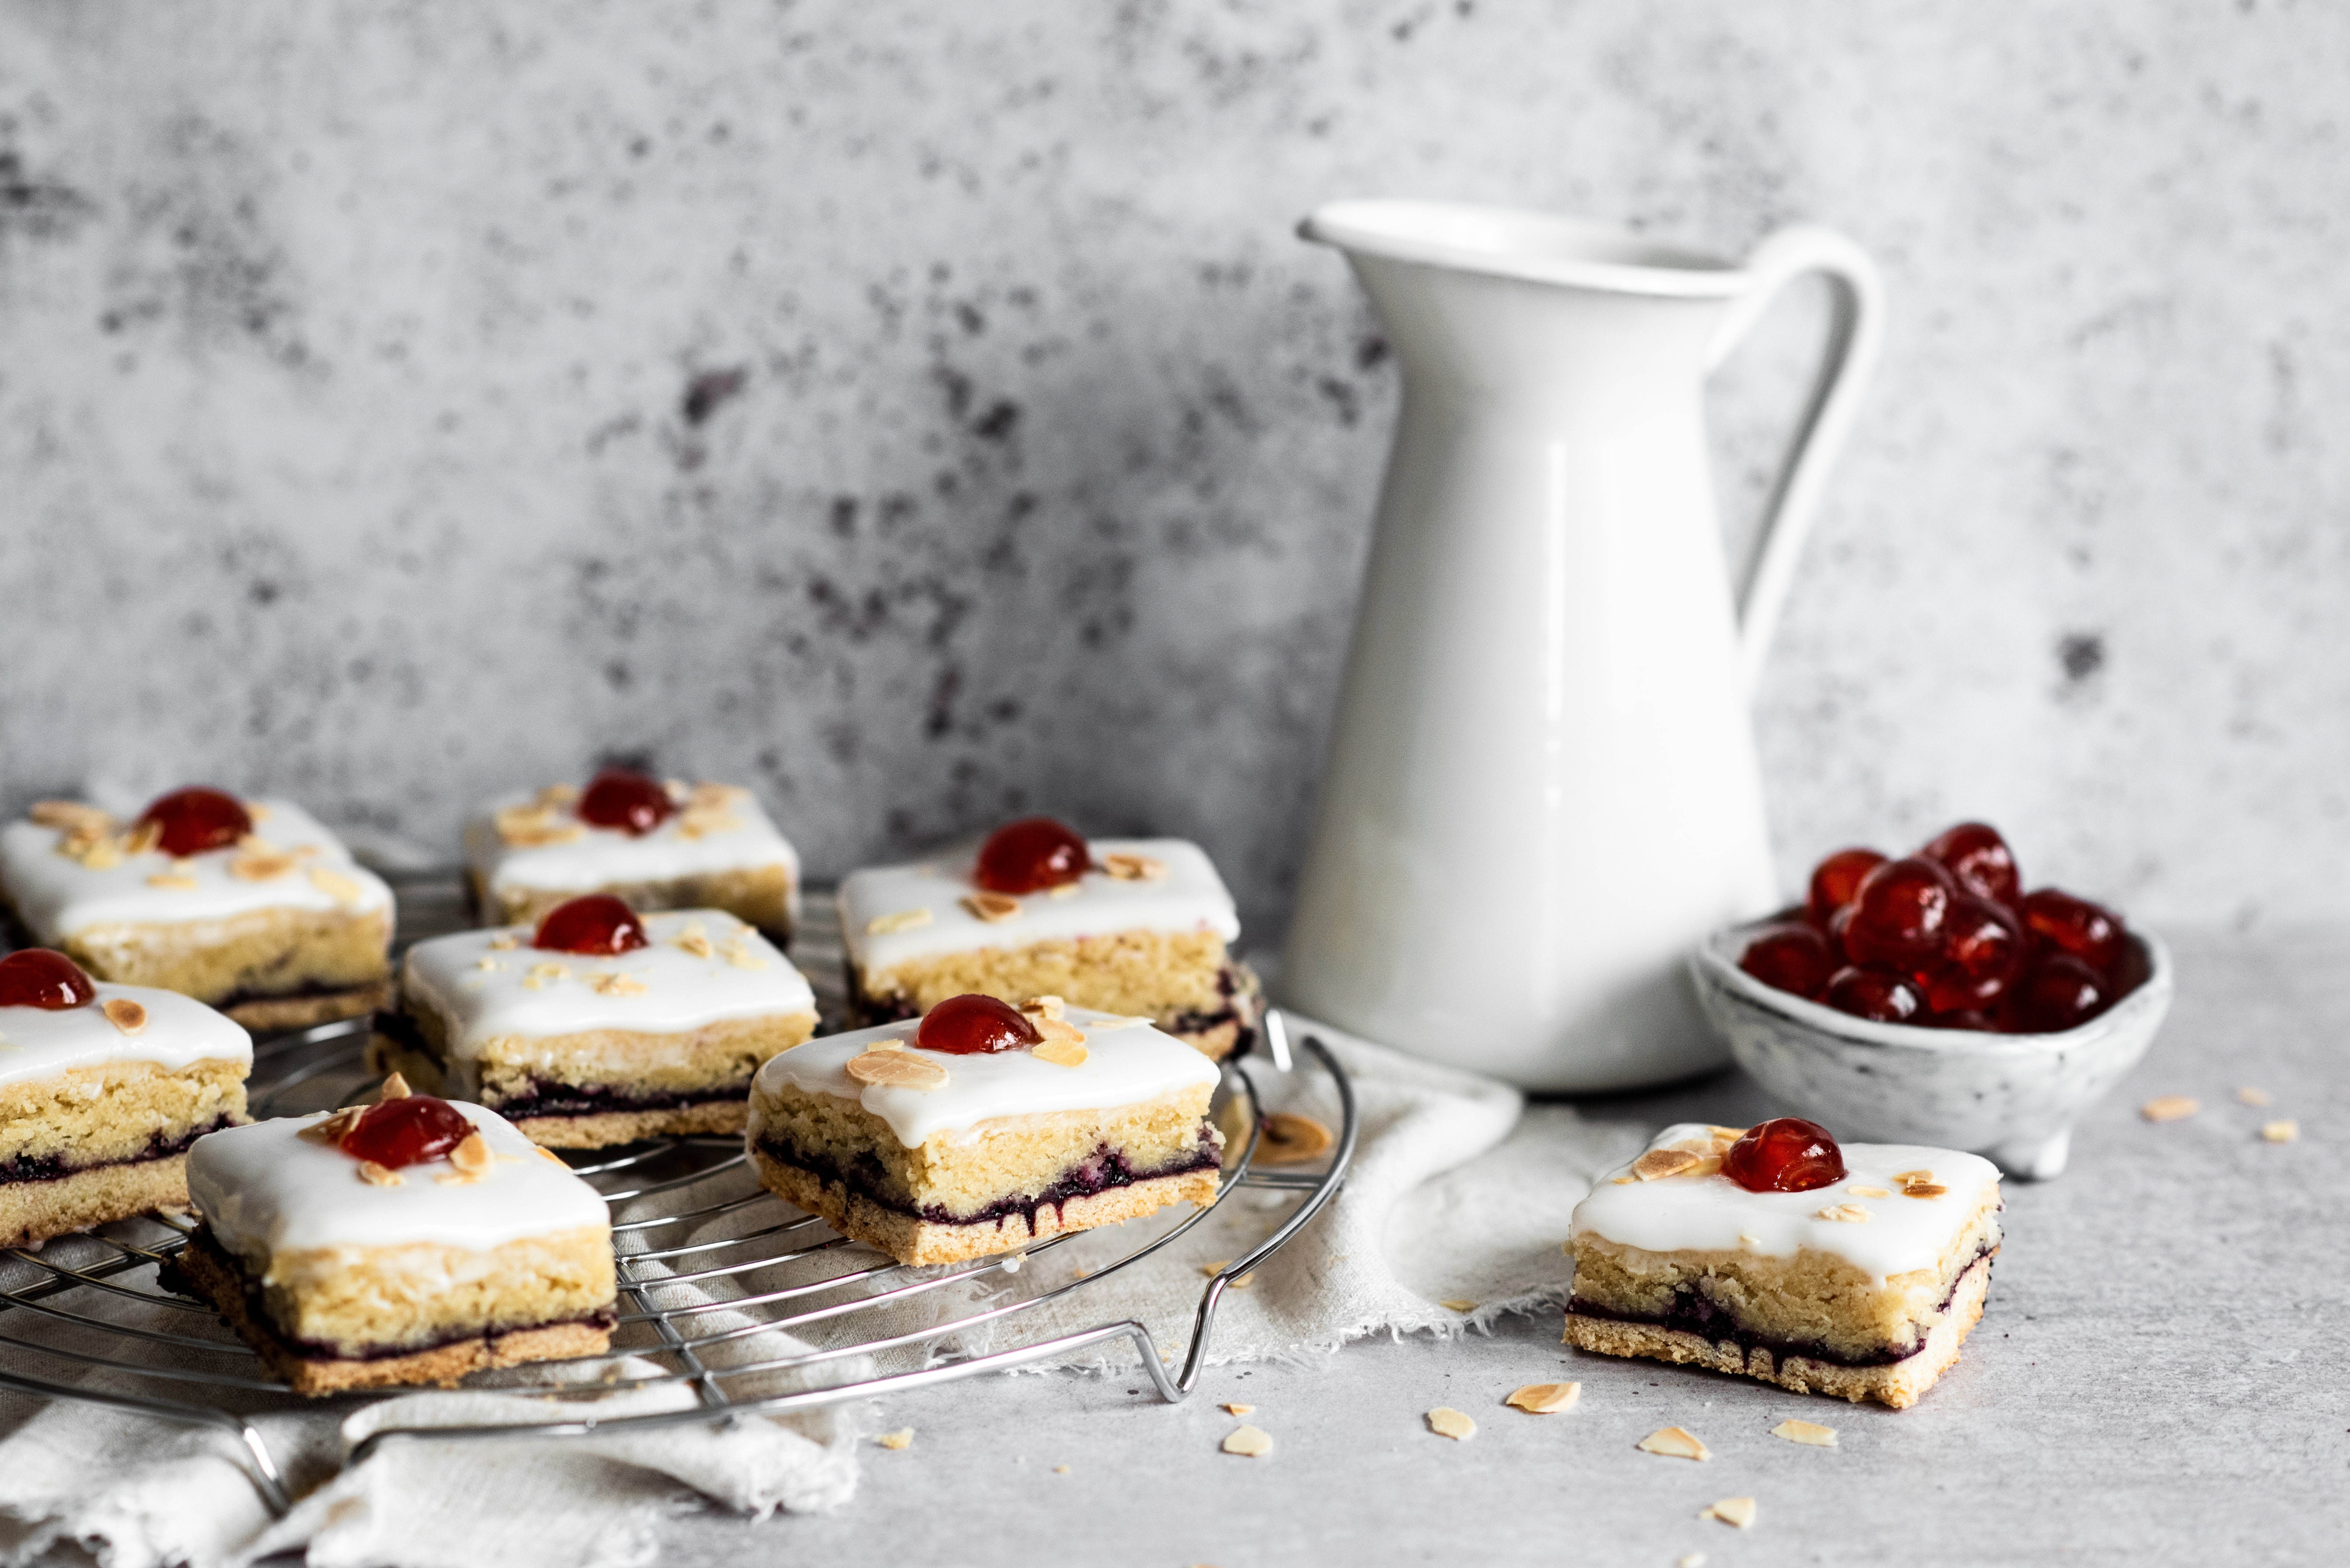 Bakewell Tart slices on a cooling rack